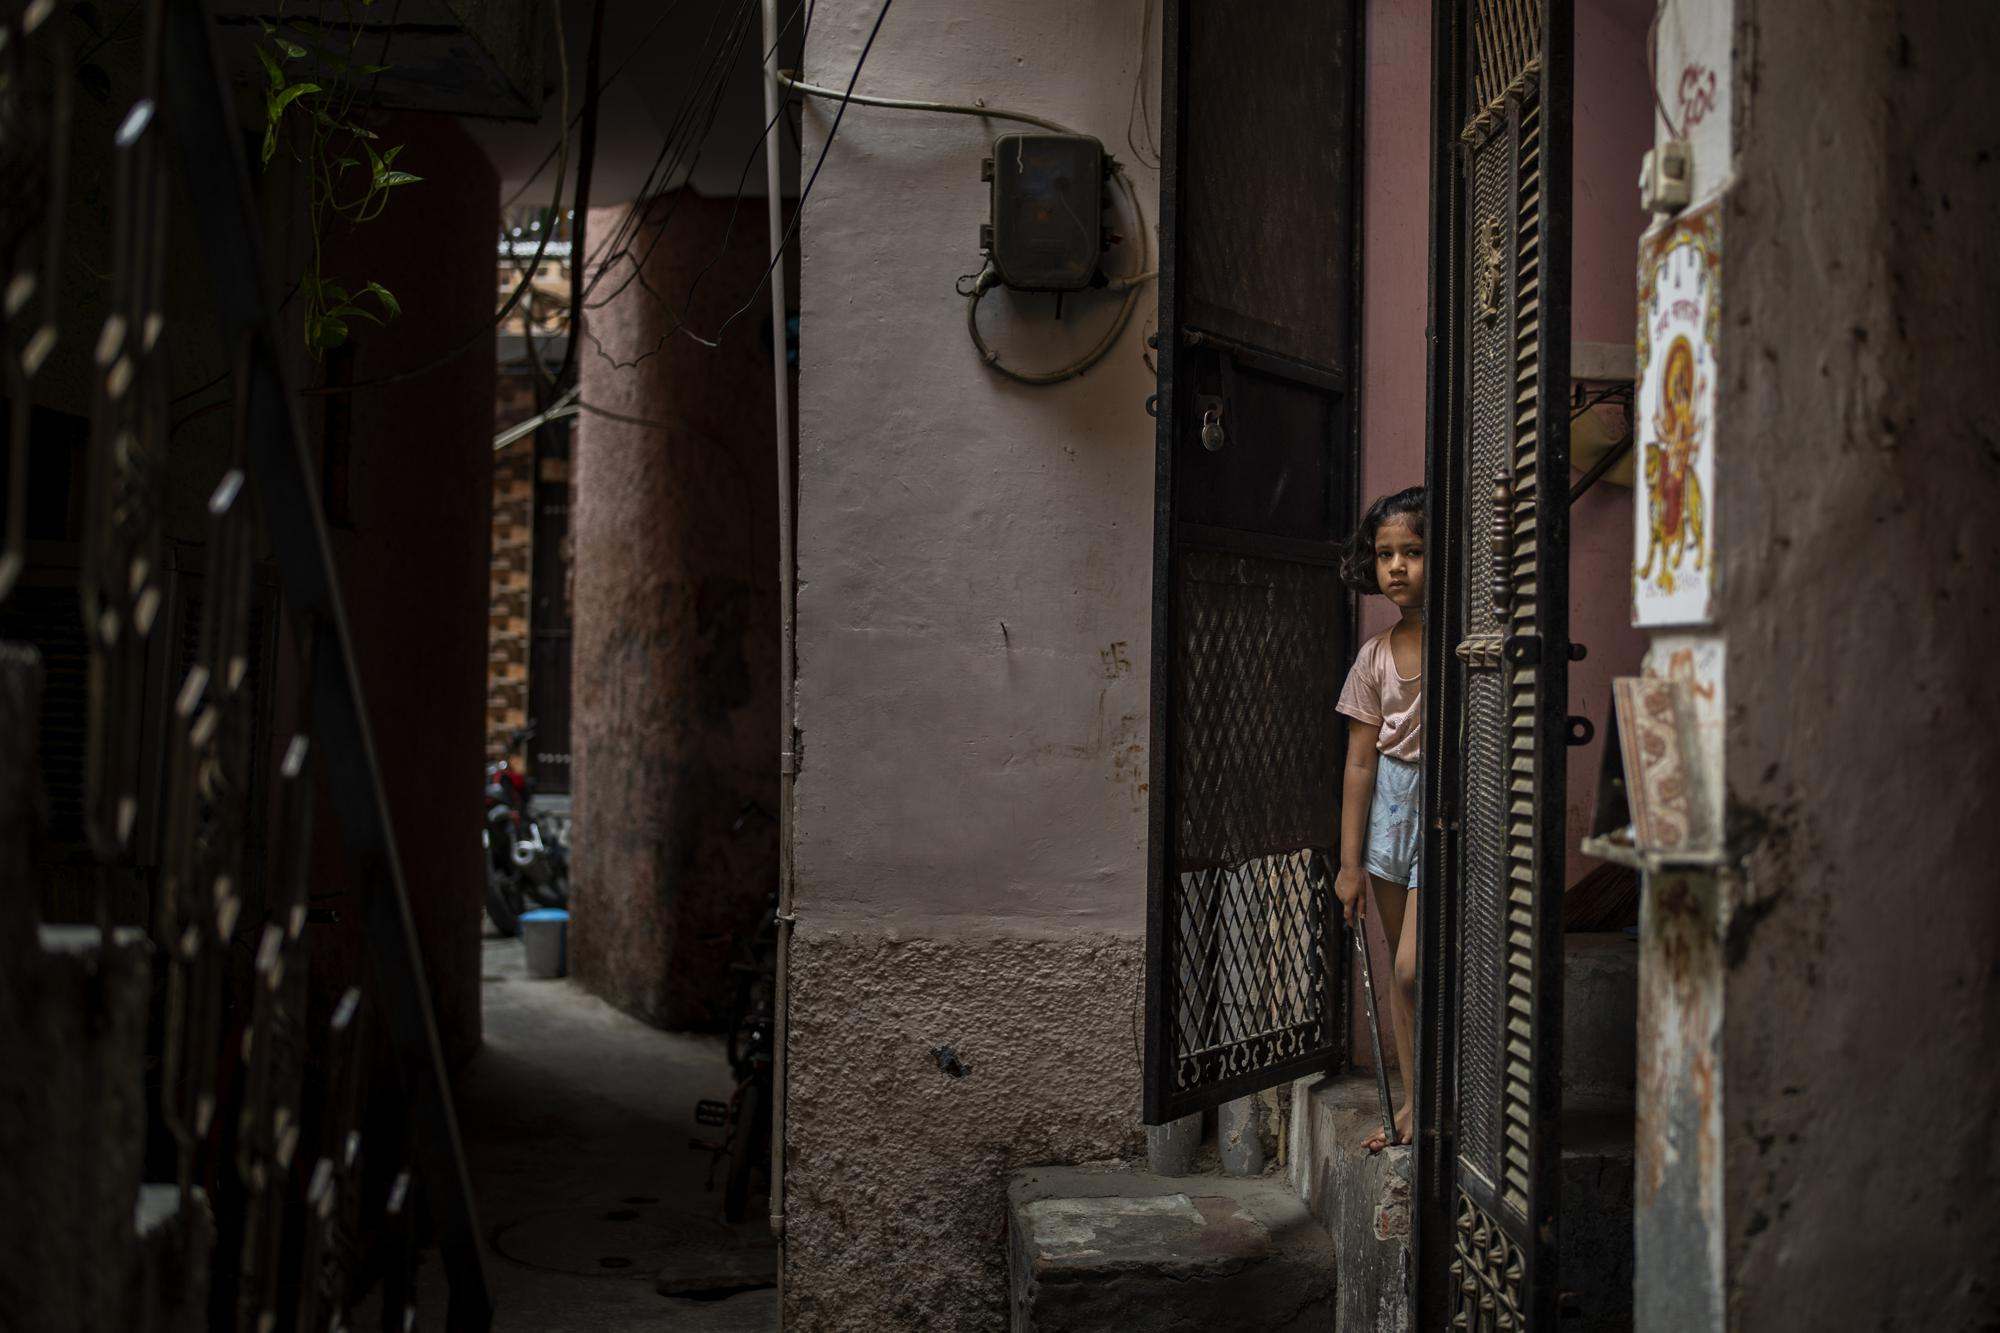 A young girl stands at the entrance of her house next to the house of a 9-year-old girl from the lowest rung of India's caste system who, according to her parents and protesters, was raped and killed earlier this week, in New Delhi, India, Thursday, Aug. 5, 2021. Rape and sexual violence have been under the spotlight in India since the 2012 gang rape and killing of a 23-year-old student on a New Delhi bus. The attack sparked massive protests and inspired lawmakers to order the creation of fast-track courts dedicated to rape cases and stiffen penalties for those convicted of the crime. (AP Photo/Altaf Qadri)